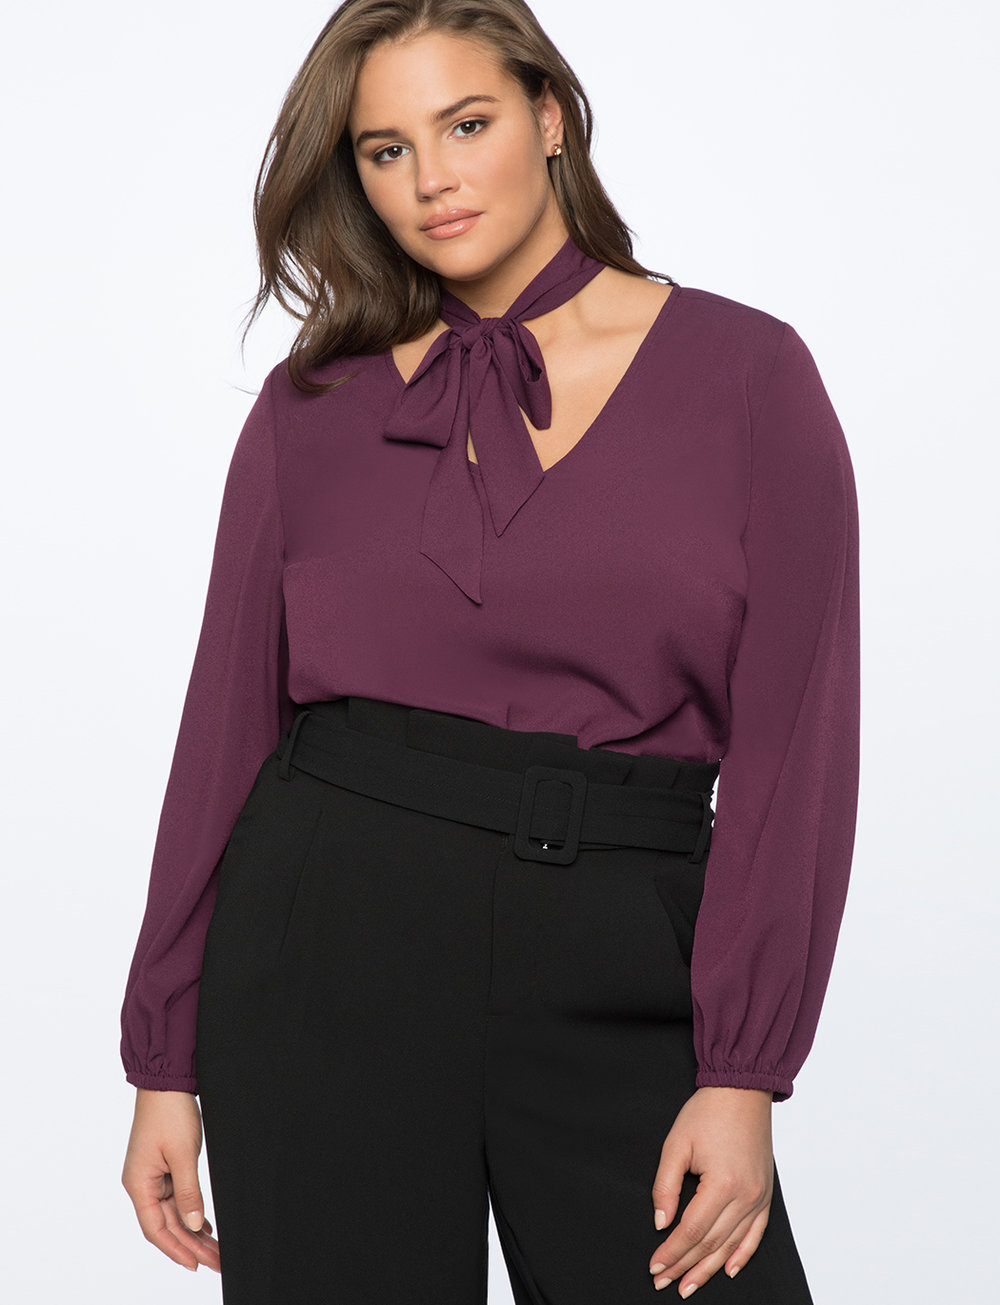 Tie Neck Top with Puff Sleeve. Available in three colors. Eloquii. $74 + 50% off with code: YESPLEASE. Polyester